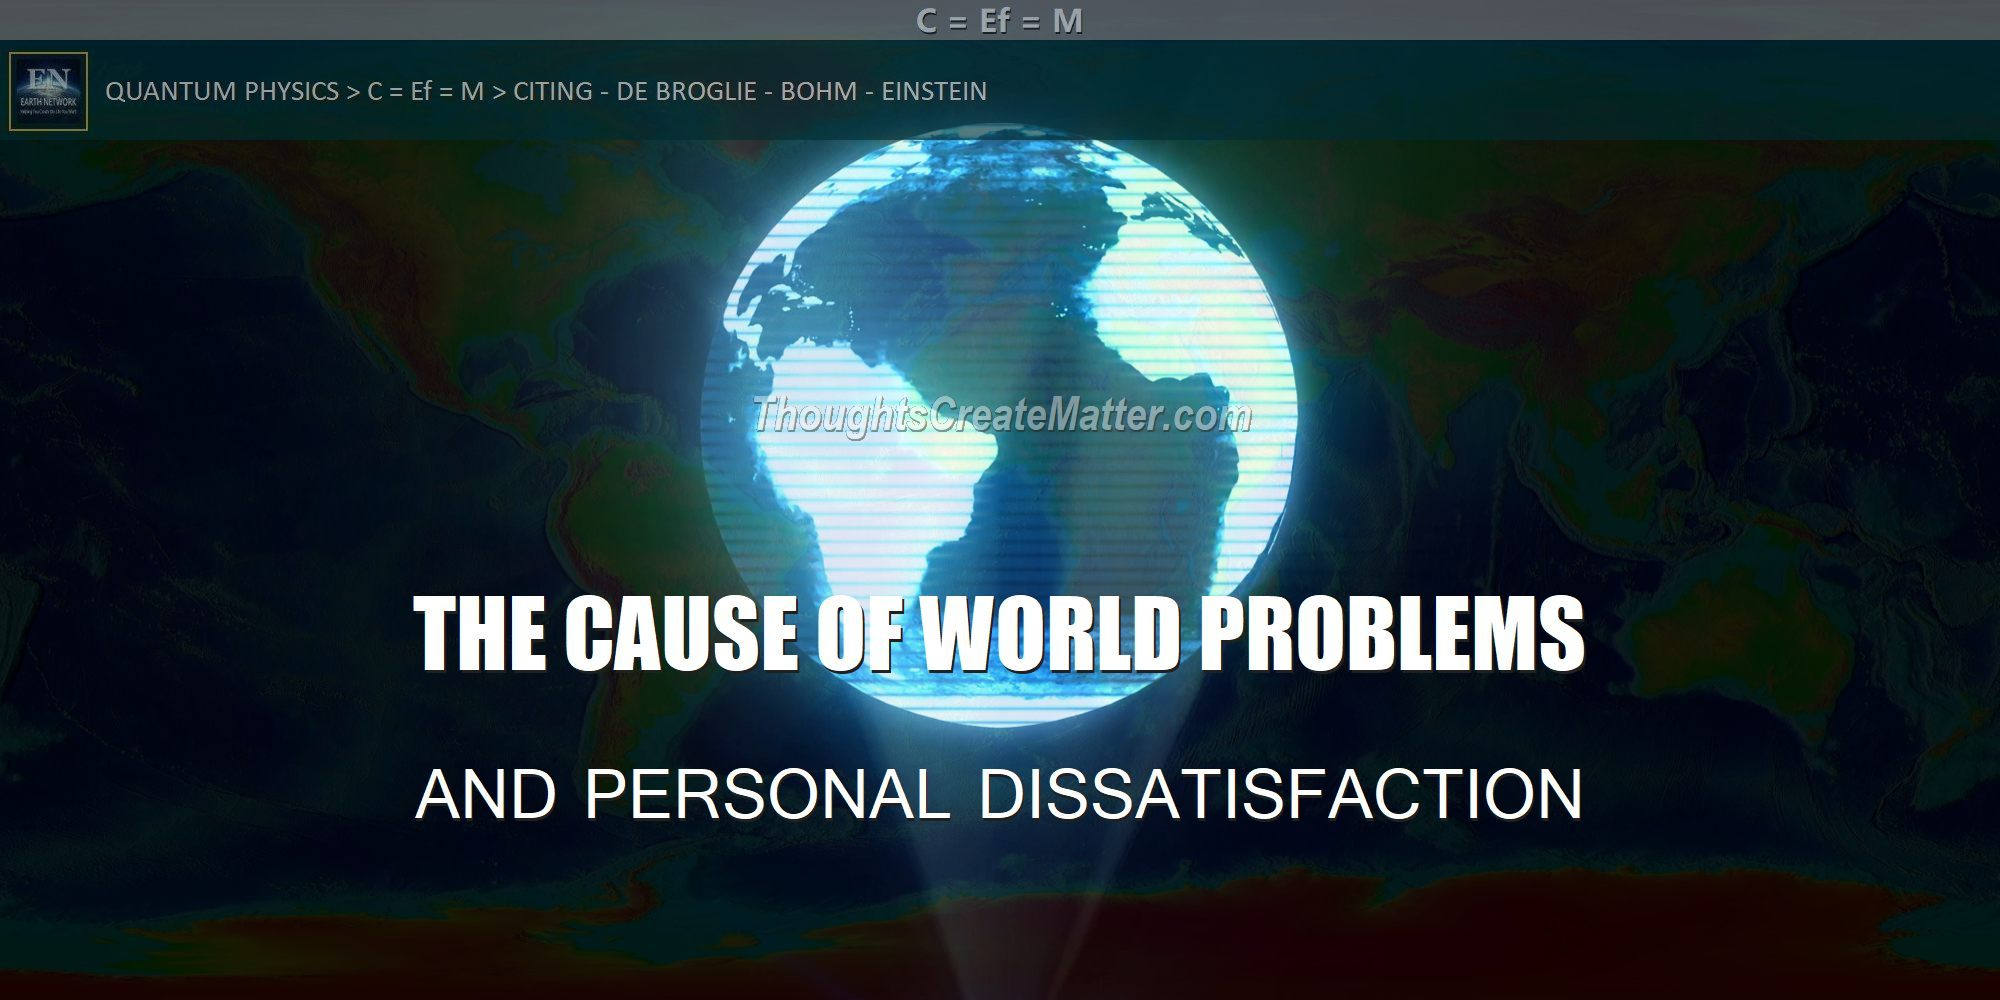 Holographic projection of earth represents the source of problems and how people's thoughts create division and conflict personally, socially and politically